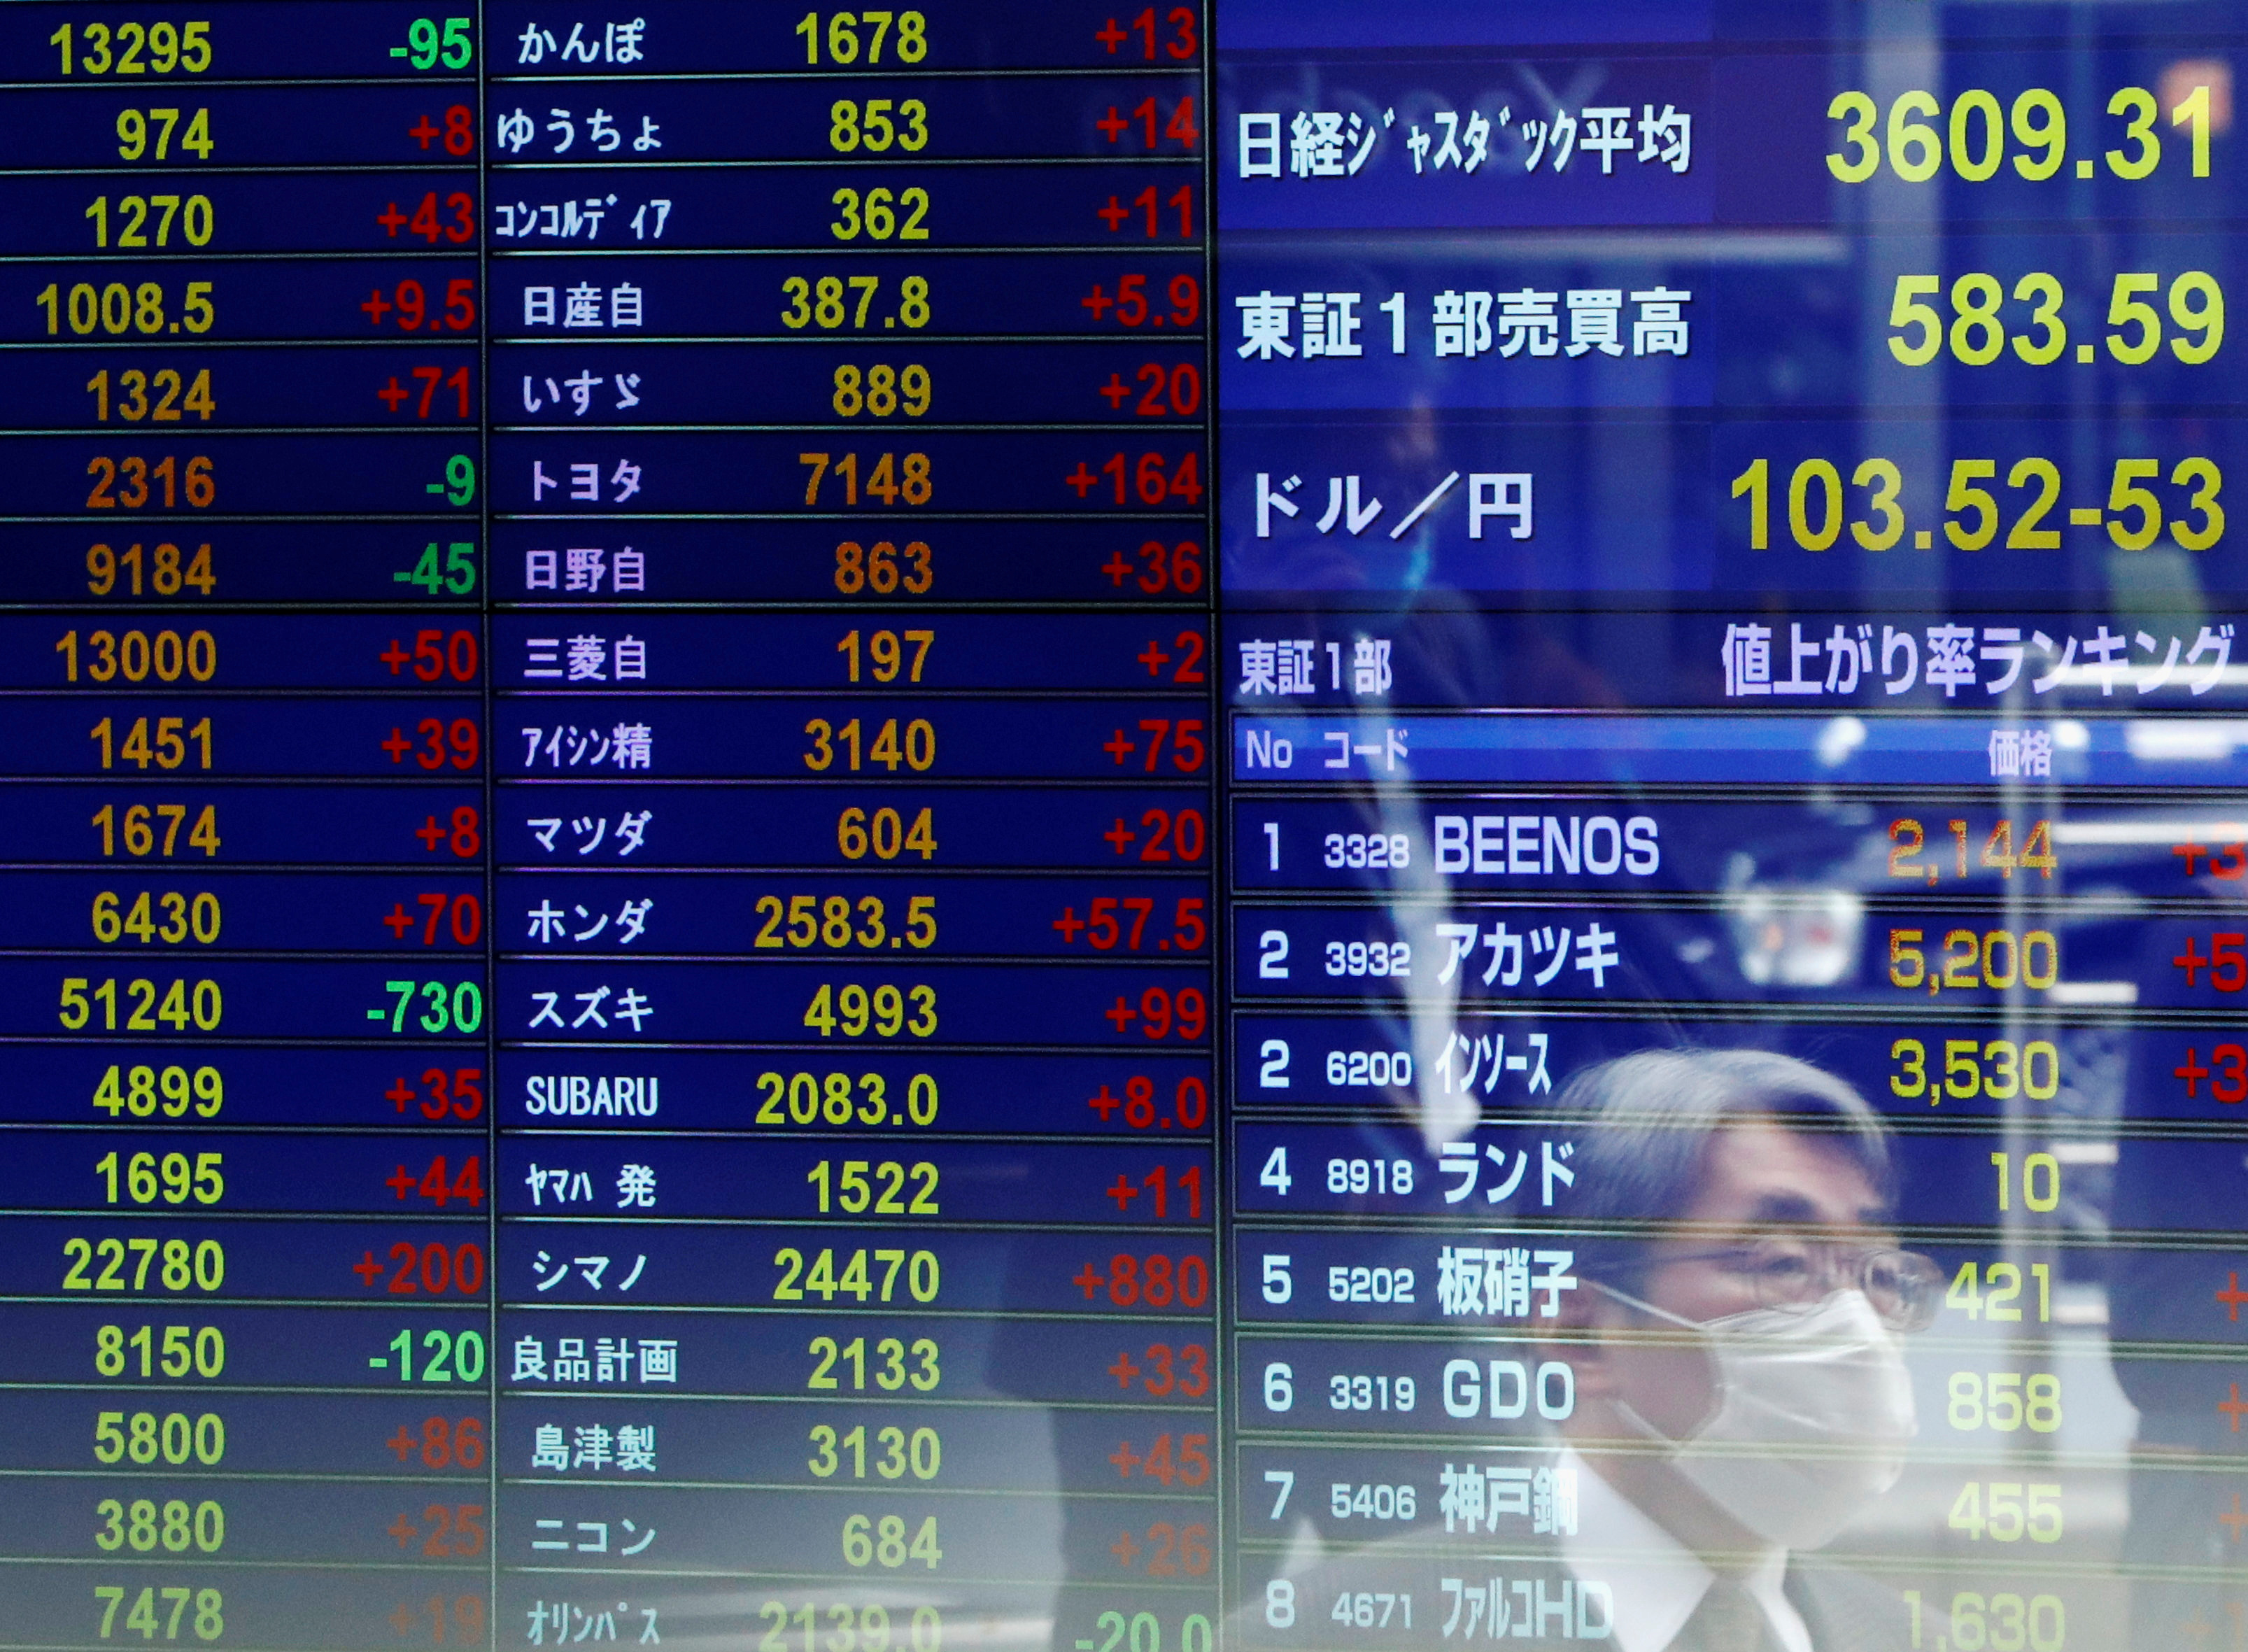 FILE PHOTO: A passersby wearing a protective face mask is reflected on screen displaying the Japanese yen exchange rate against the U.S. dollar and stock prices at a brokerage, amid the coronavirus disease (COVID-19) outbreak, in Tokyo, Japan November 6, 2020. REUTERS/Issei Kato/File Photo